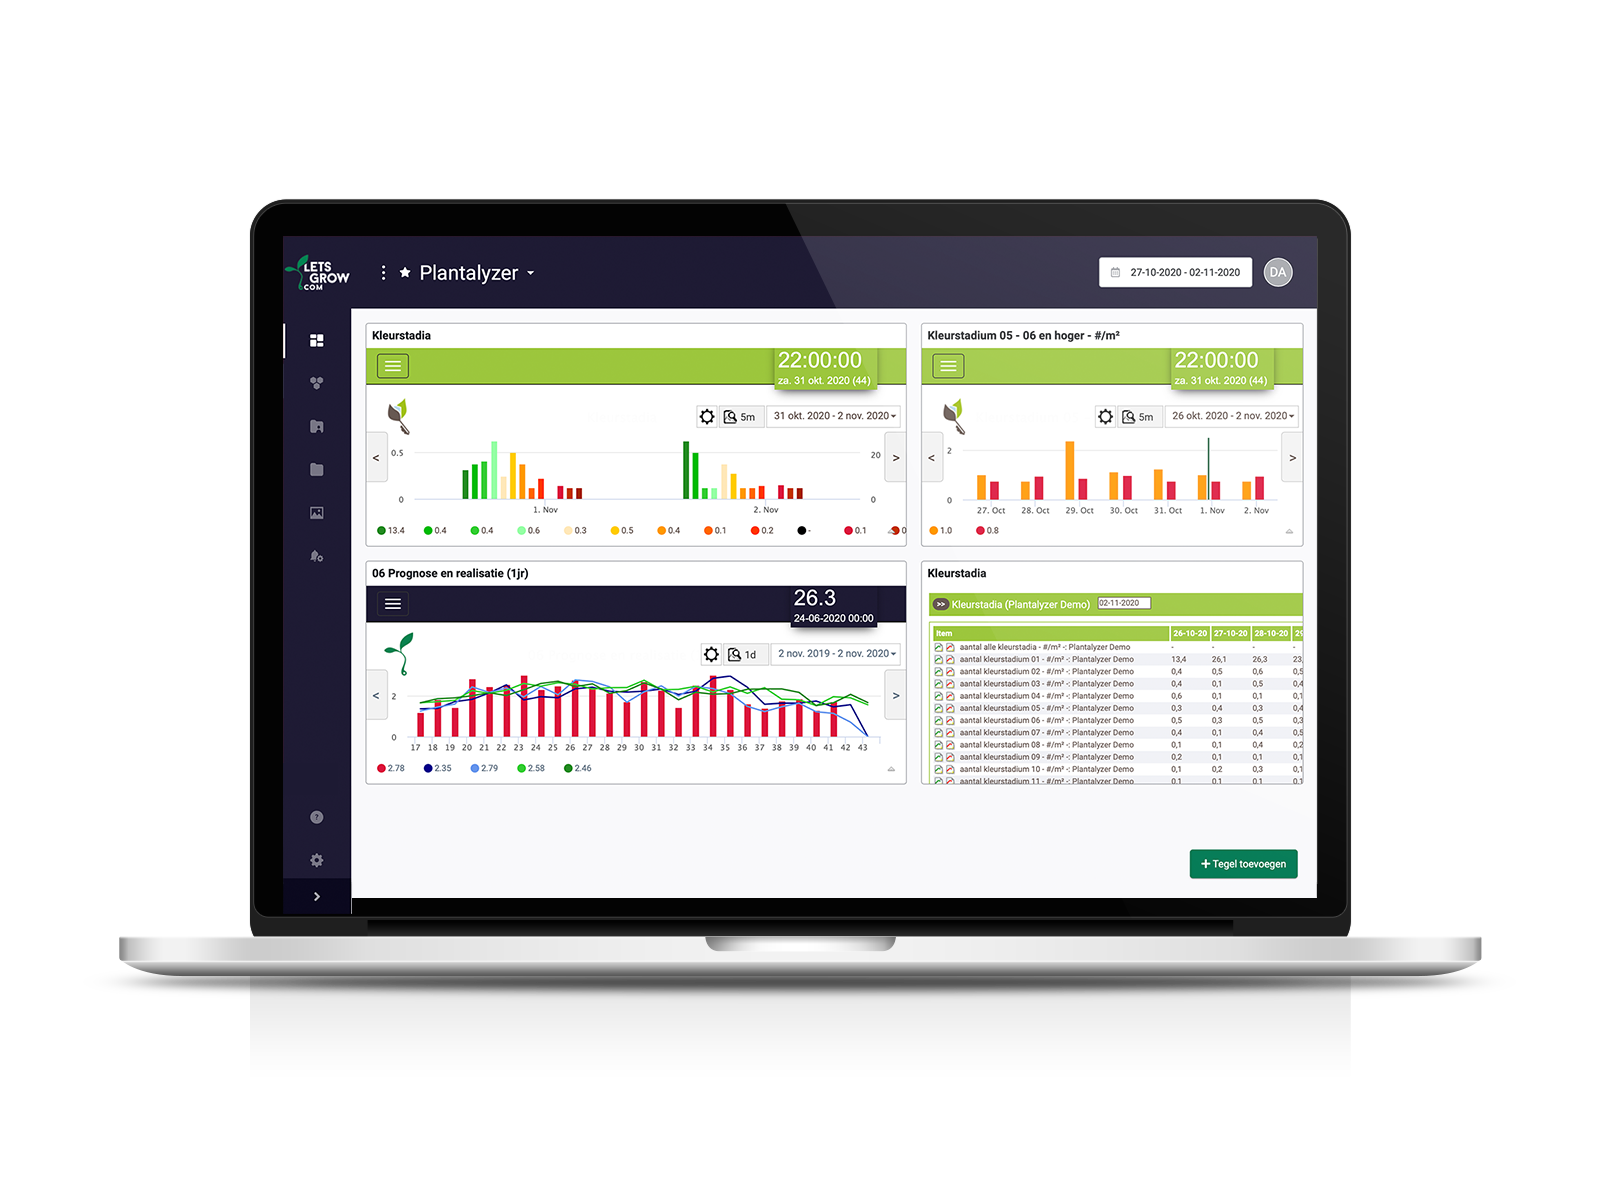 Plantalyzer dashboard